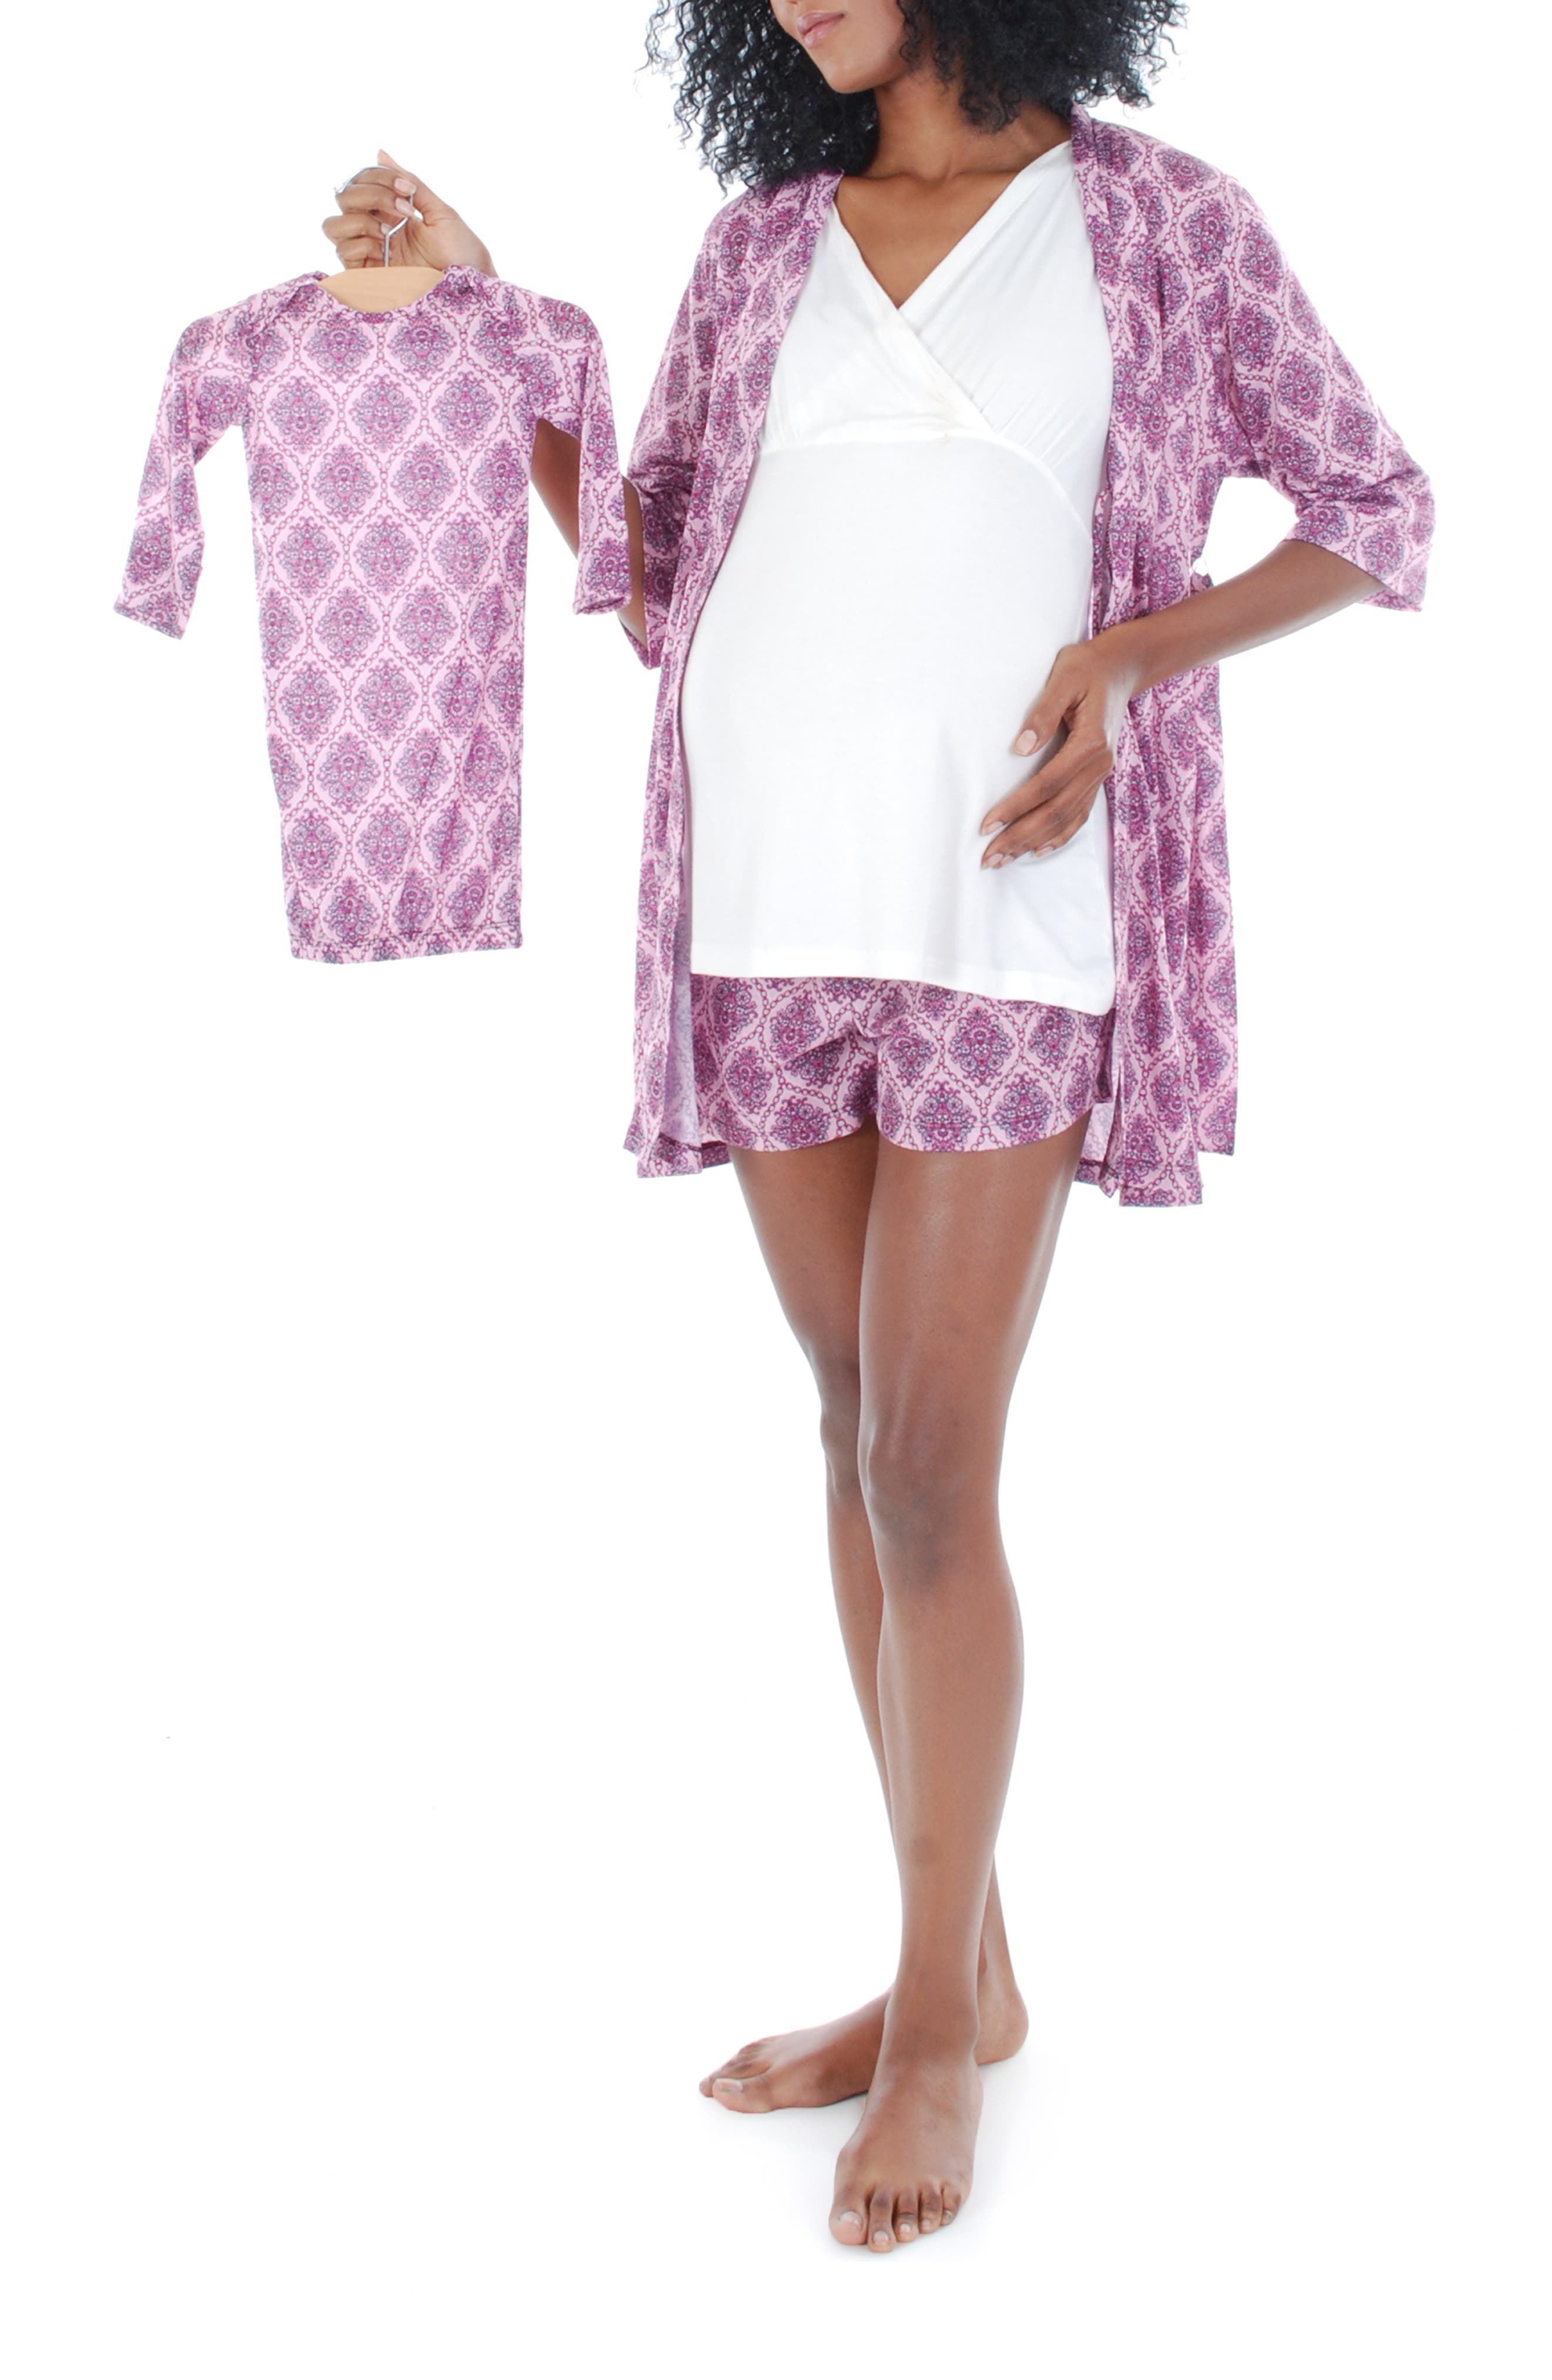 'Daphne - During & After' 5-Piece Maternity Sleepwear Set,                             Alternate thumbnail 2, color,                             500